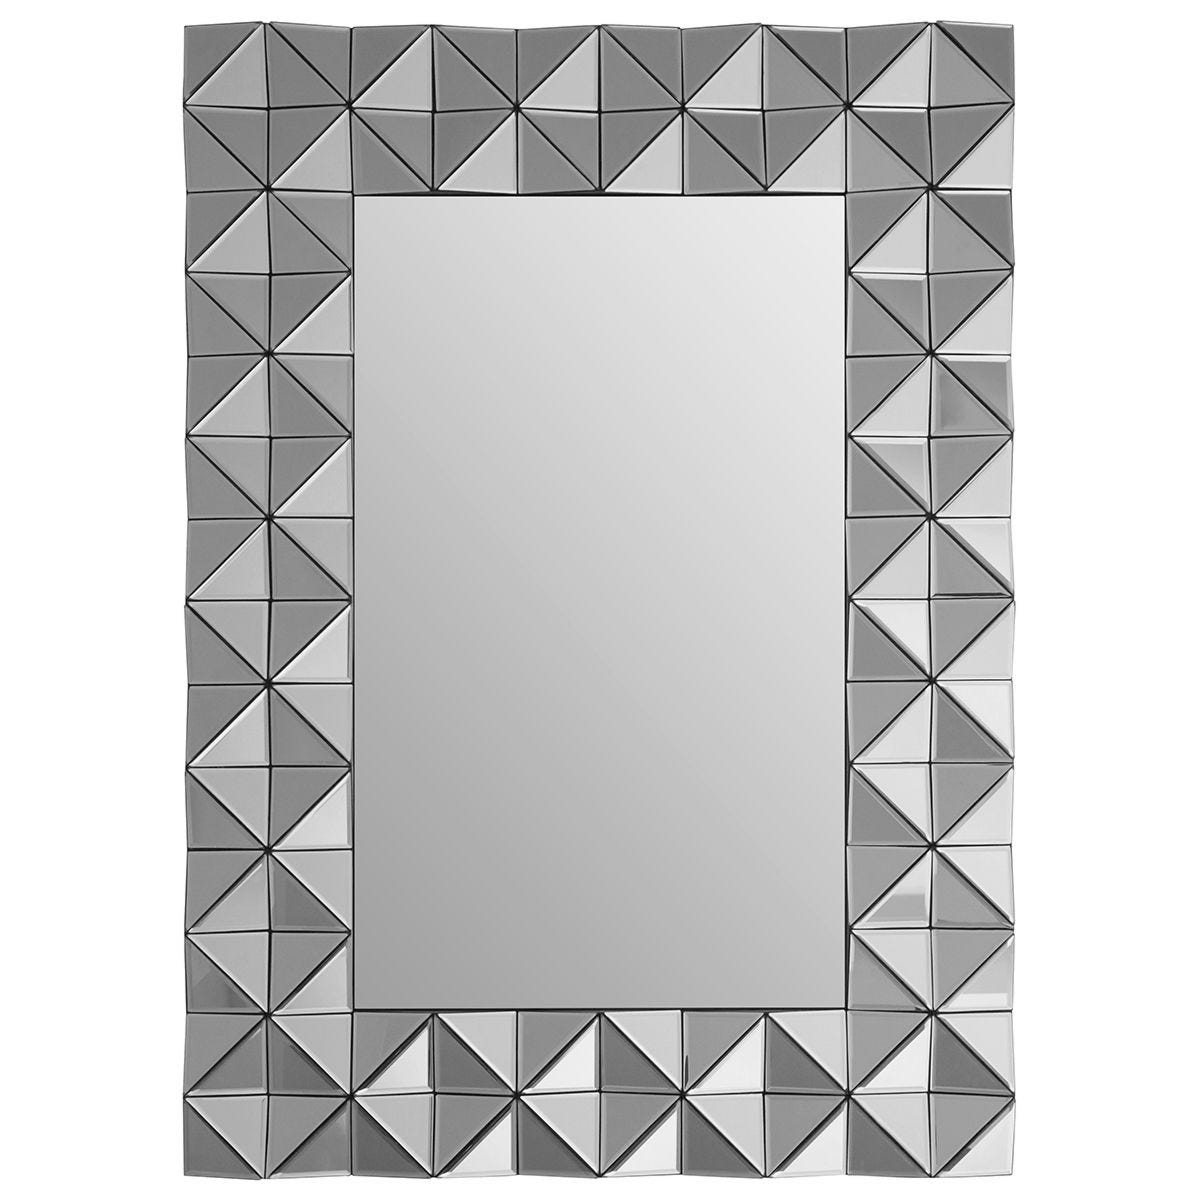 Premier Housewares Soho 3D Wall Mirror - Smoked Glass